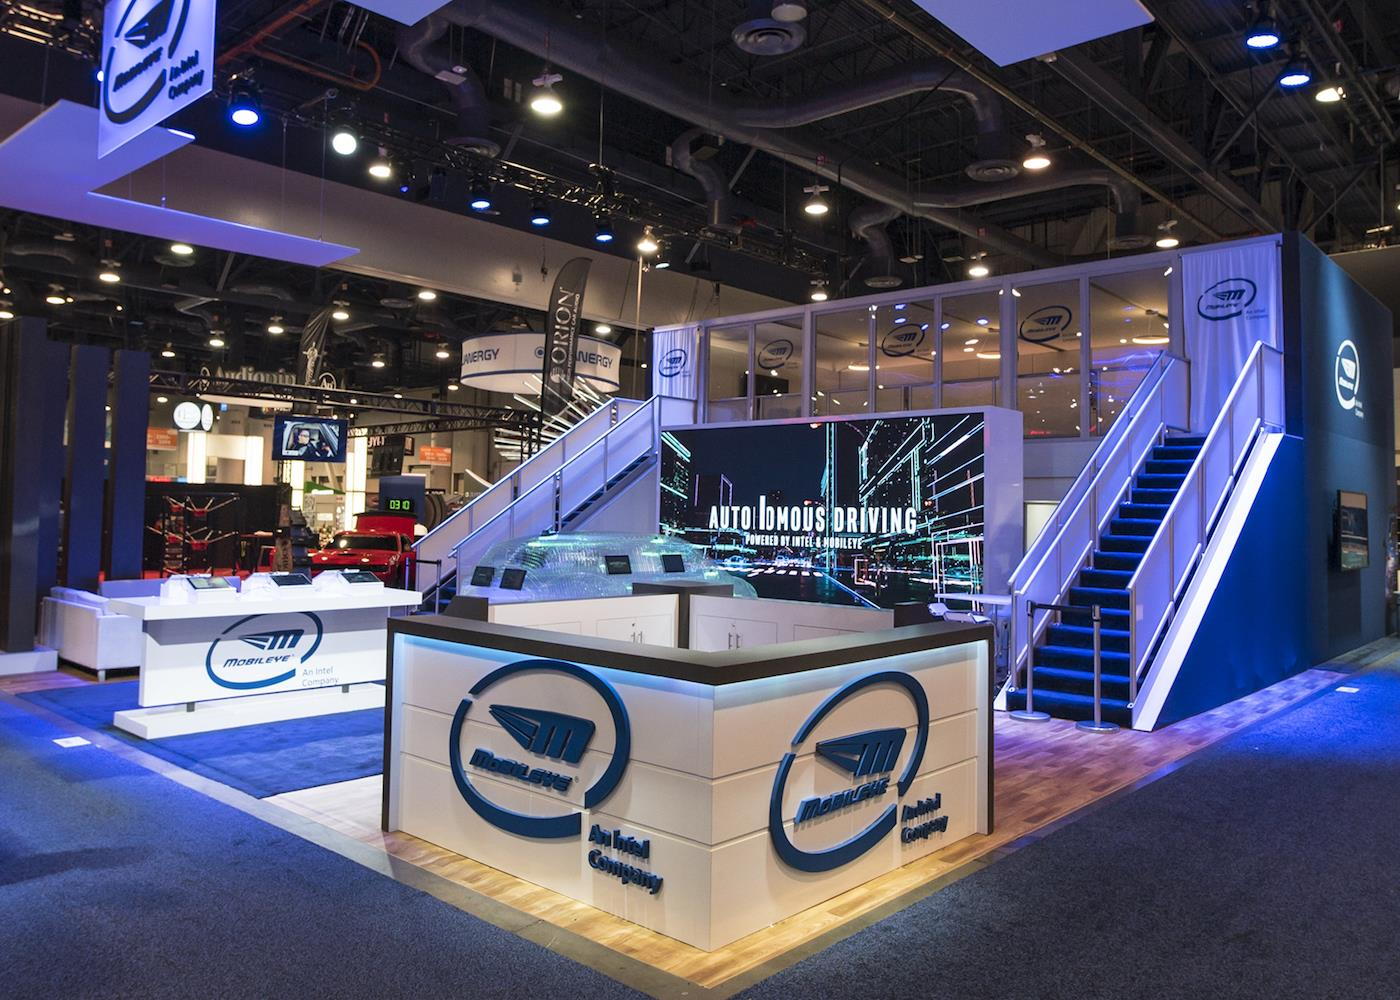 Mobileye Experiential Campaign